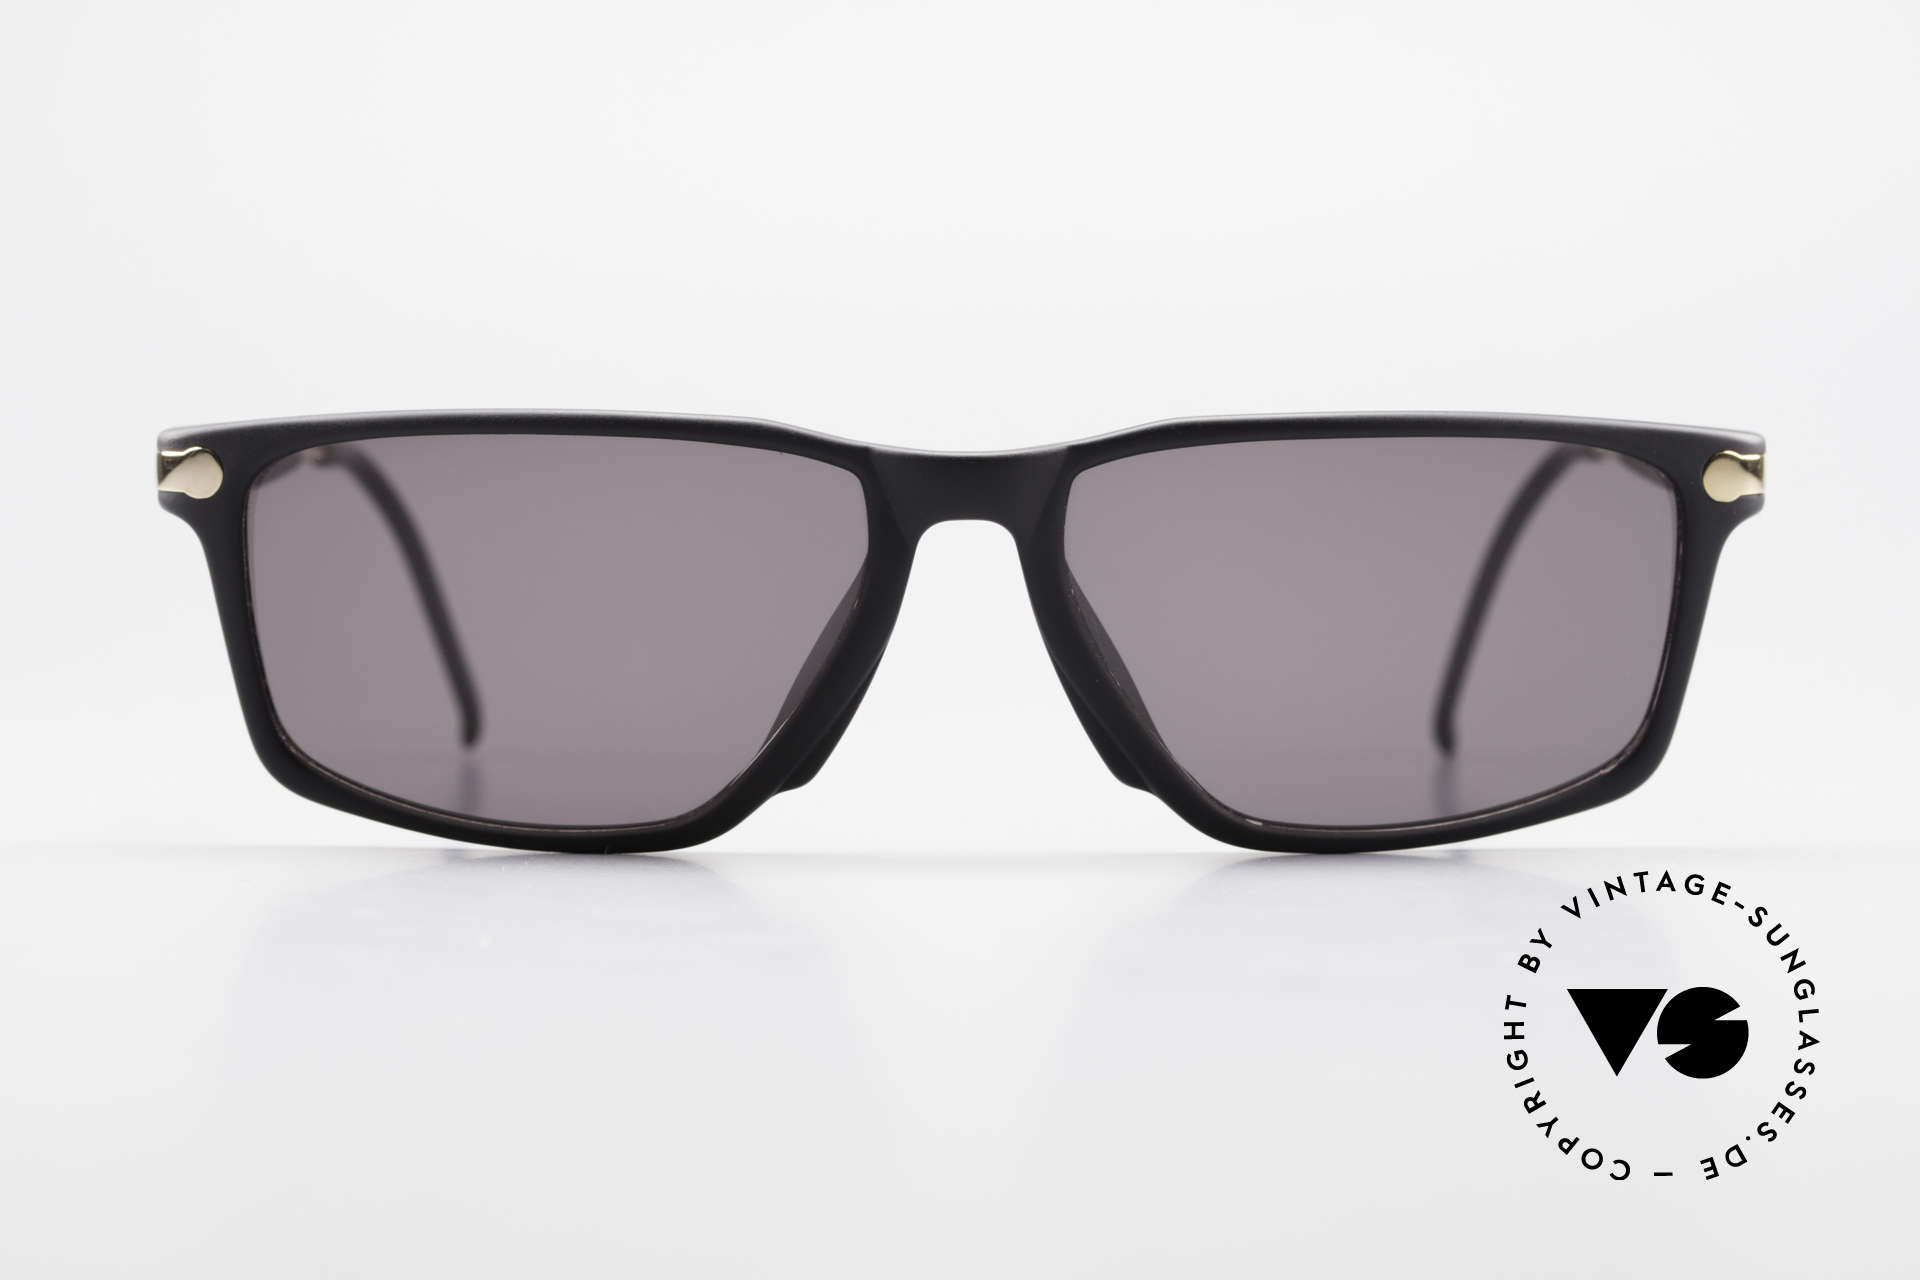 BOSS 5174 Square-Cut Vintage Sunglasses, cooperation between BOSS & Carrera, at that time, Made for Men